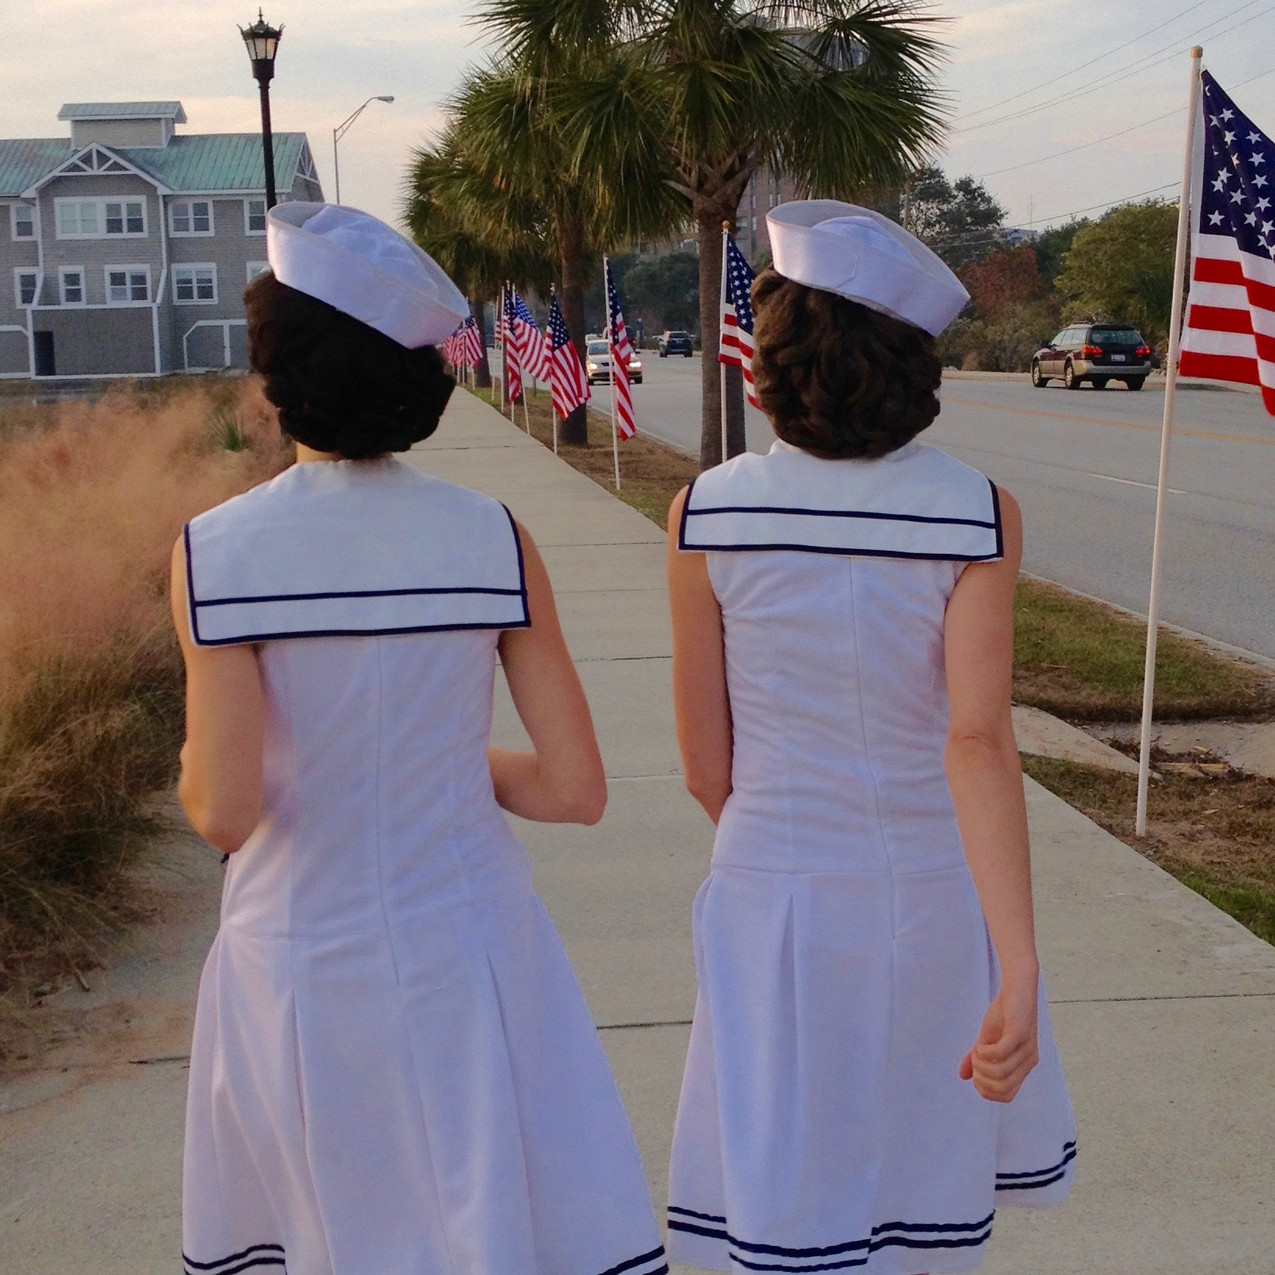 Gracie & Lacy celebrate US veterans and military, providing professional patriotic entertainment nationwide.